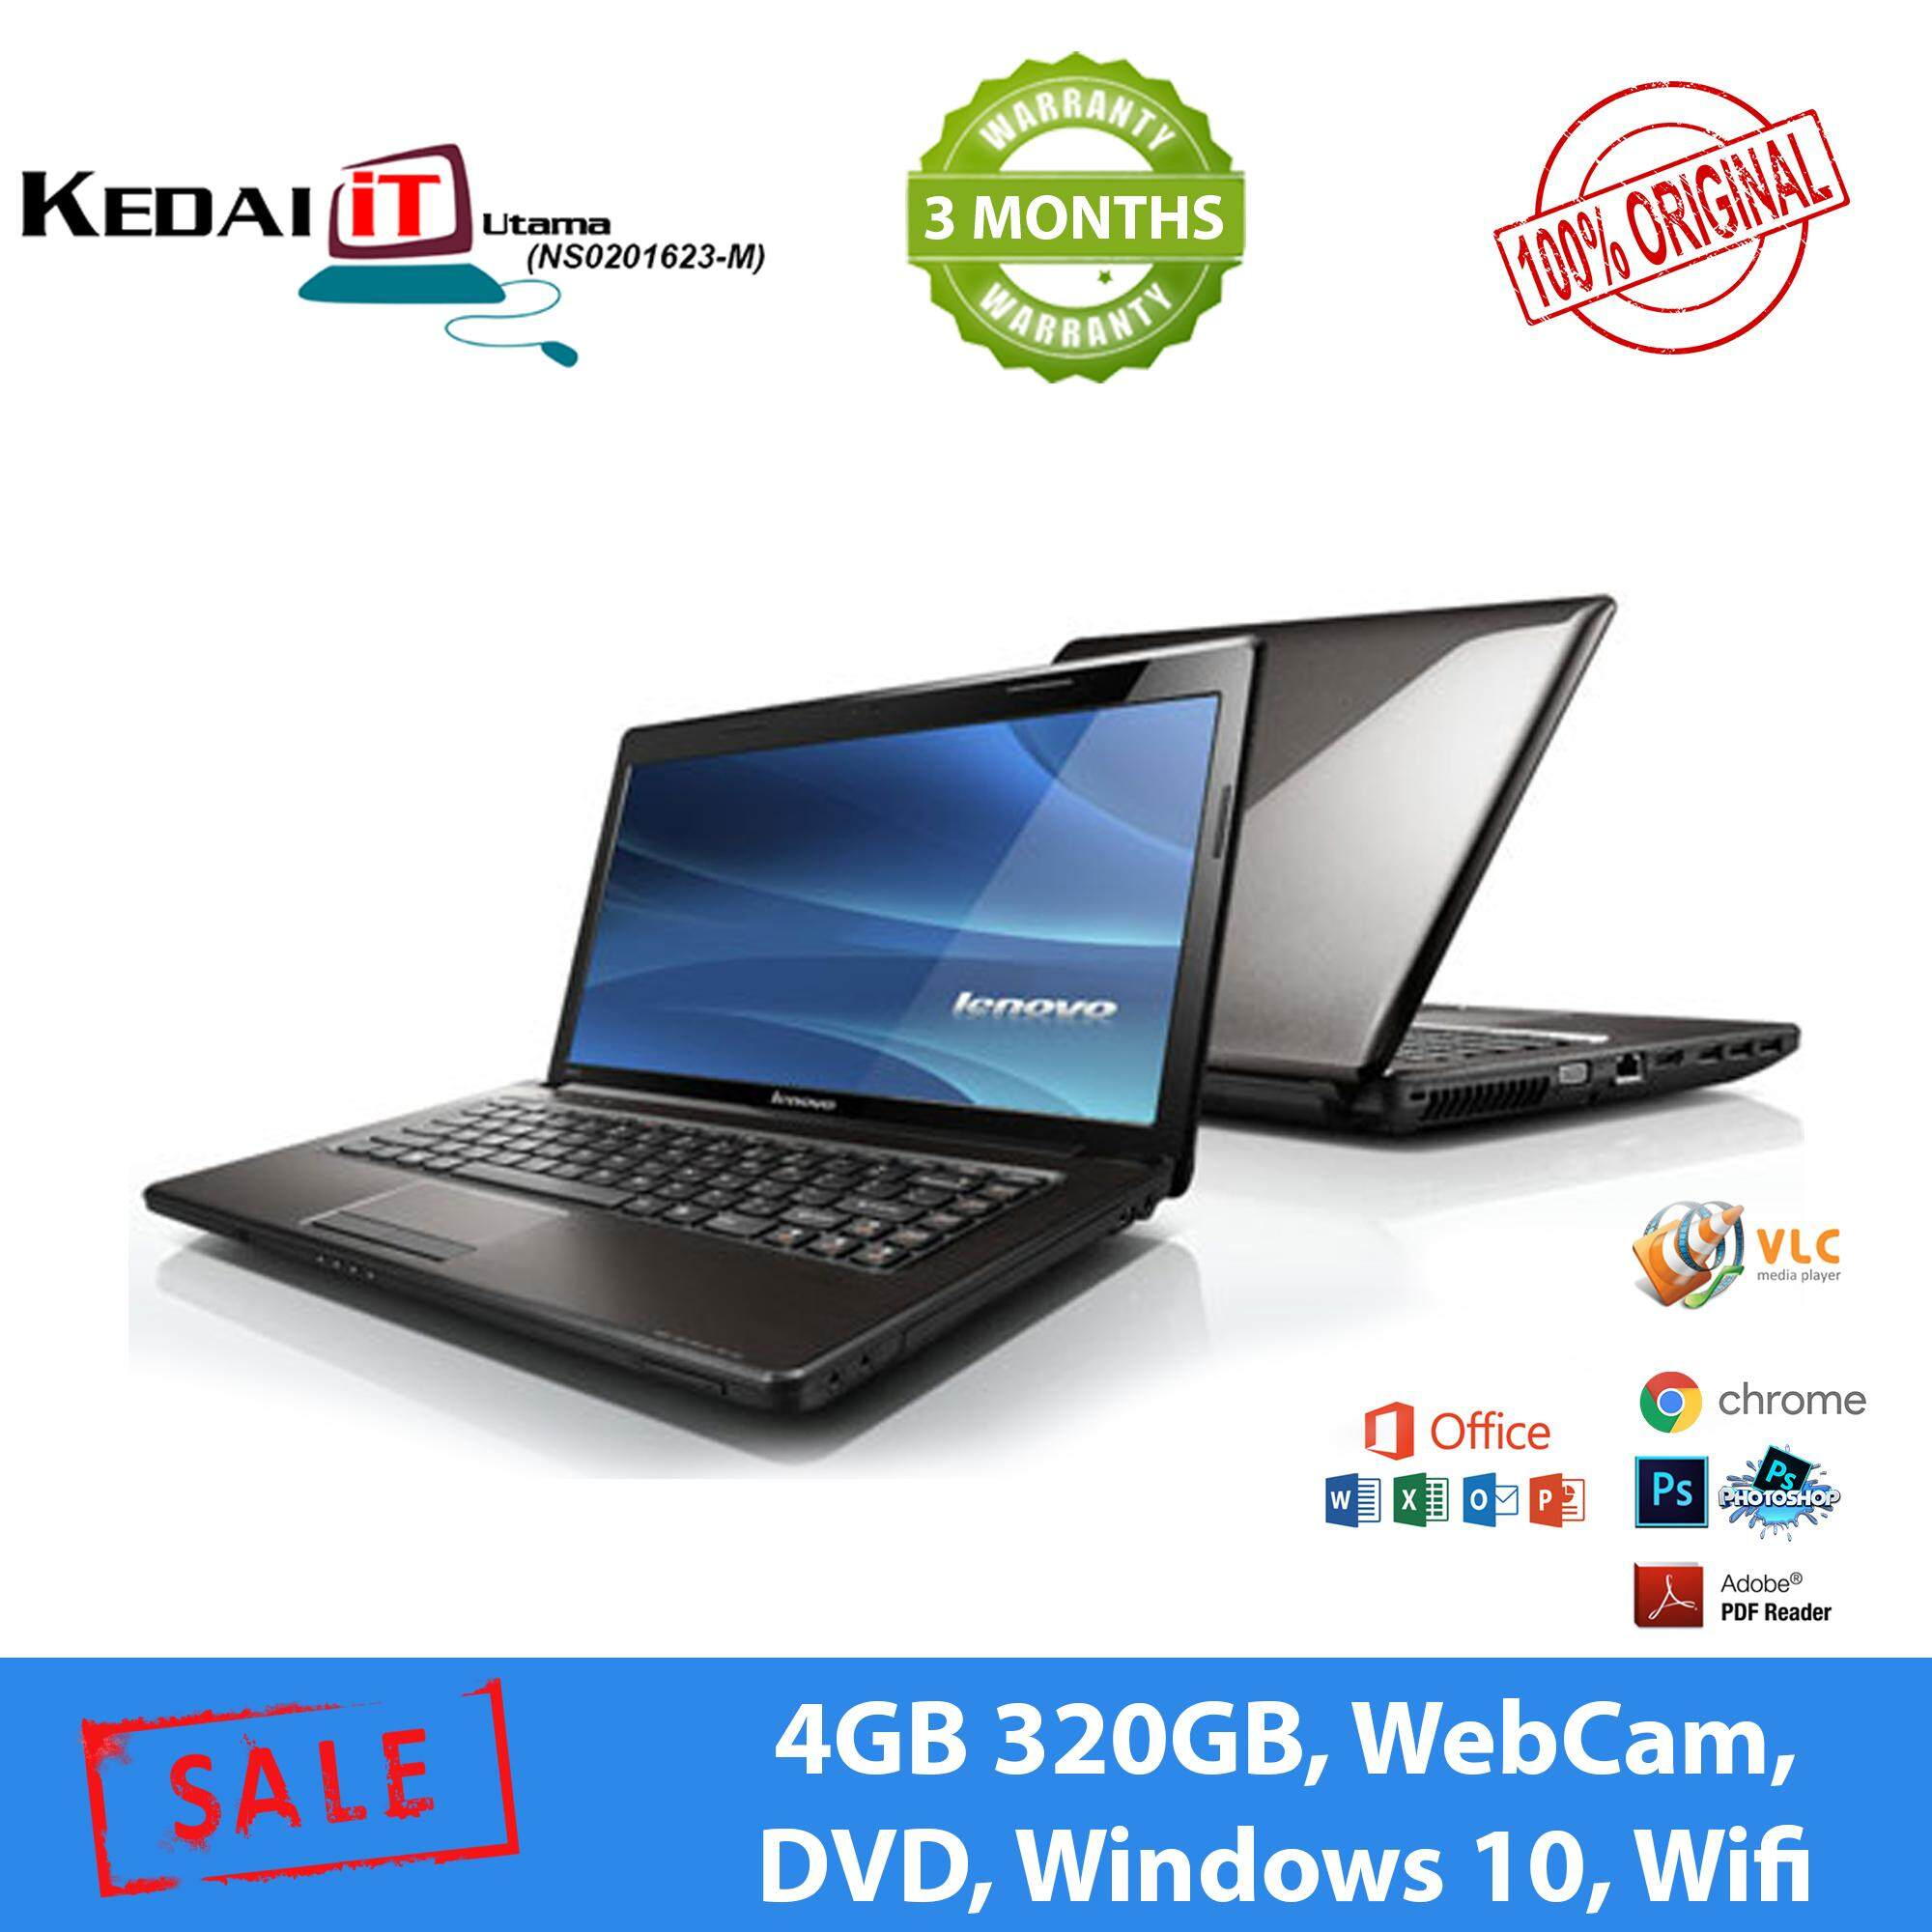 Lenovo i3 Laptop - G470 - 4GB RAM, 320GB HDD, WebCam, Wifi , Windows 10, 3 Months Warranty  + FreeBag , Mouse (Refurbished) Malaysia